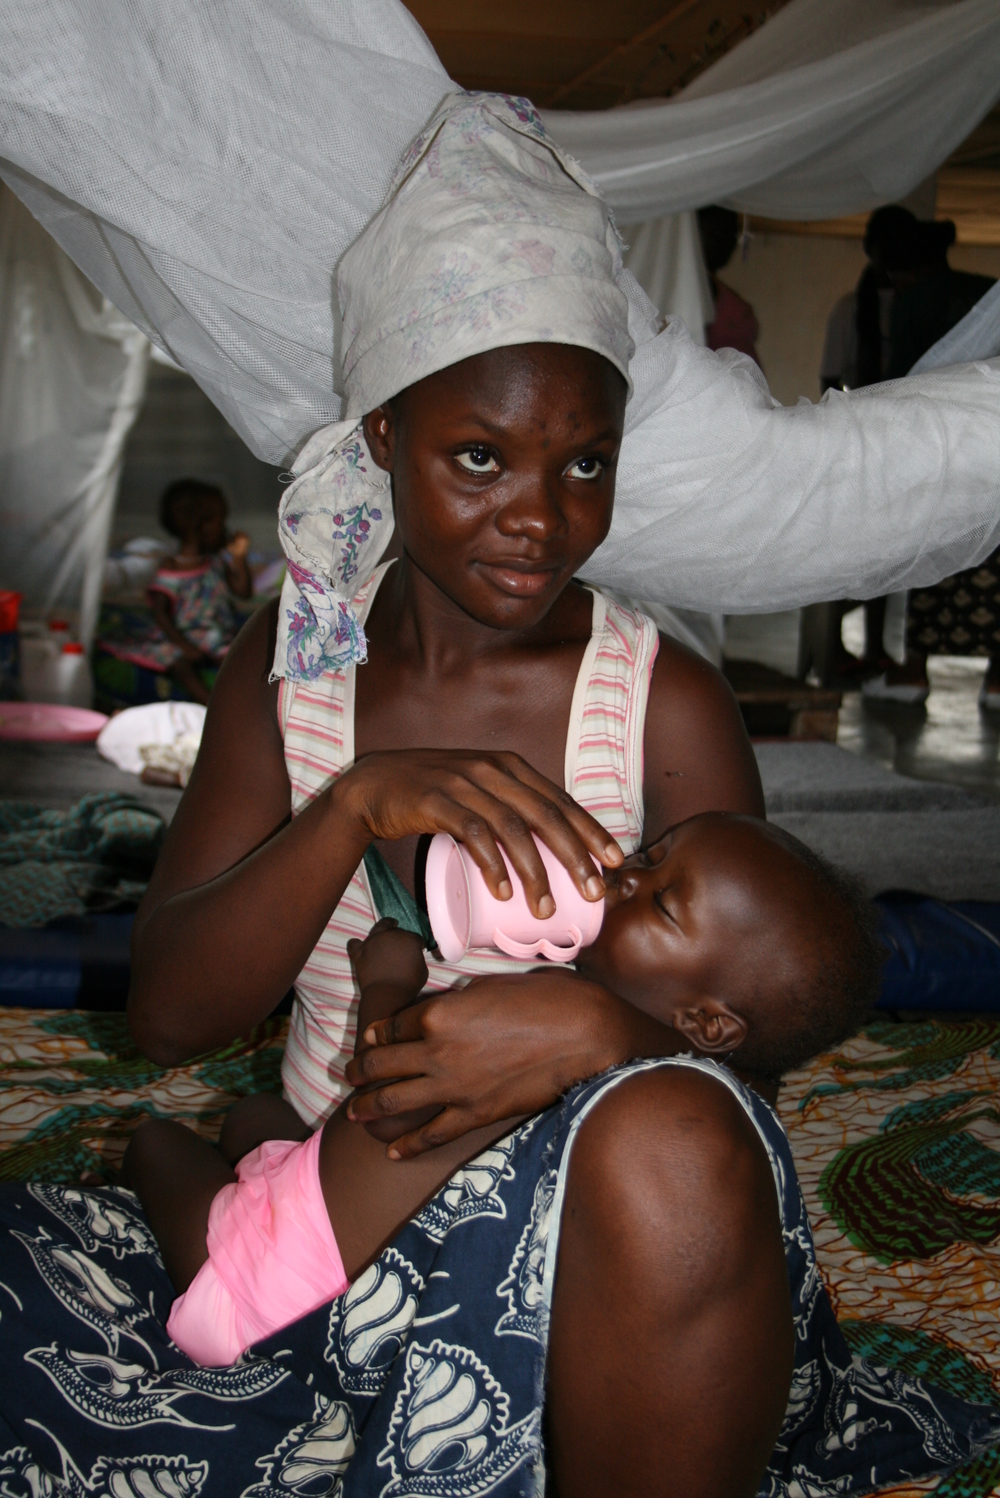 Mamie Masako, 19 feeds her baby at the VOA therapeutic feeding centre for severely acutely malnourished children, run by ACF